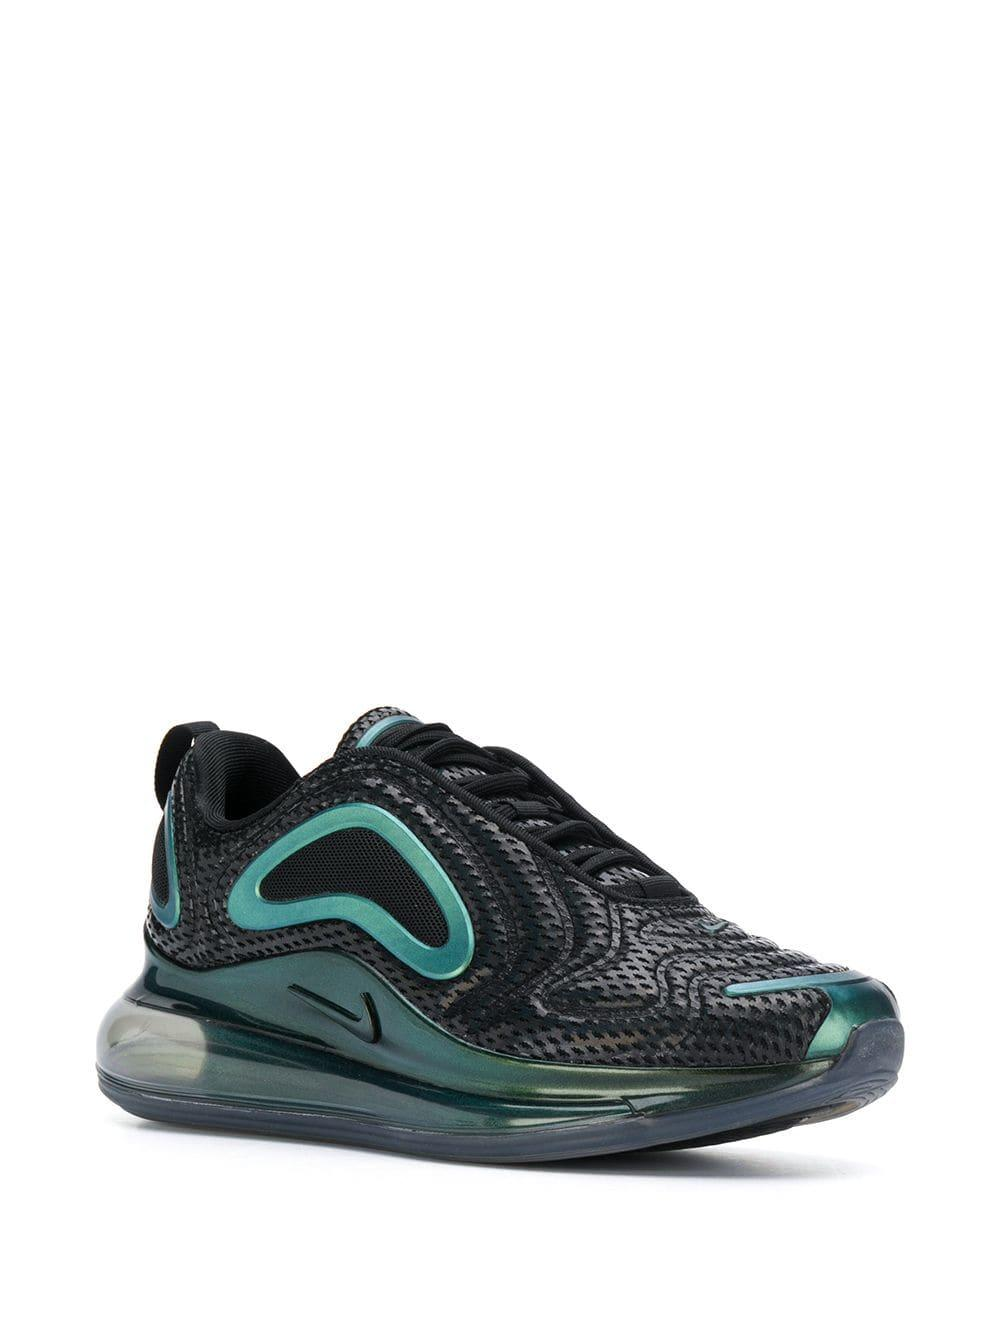 a4dd260c98 Nike Air Max 720 Sneakers in Black for Men - Lyst